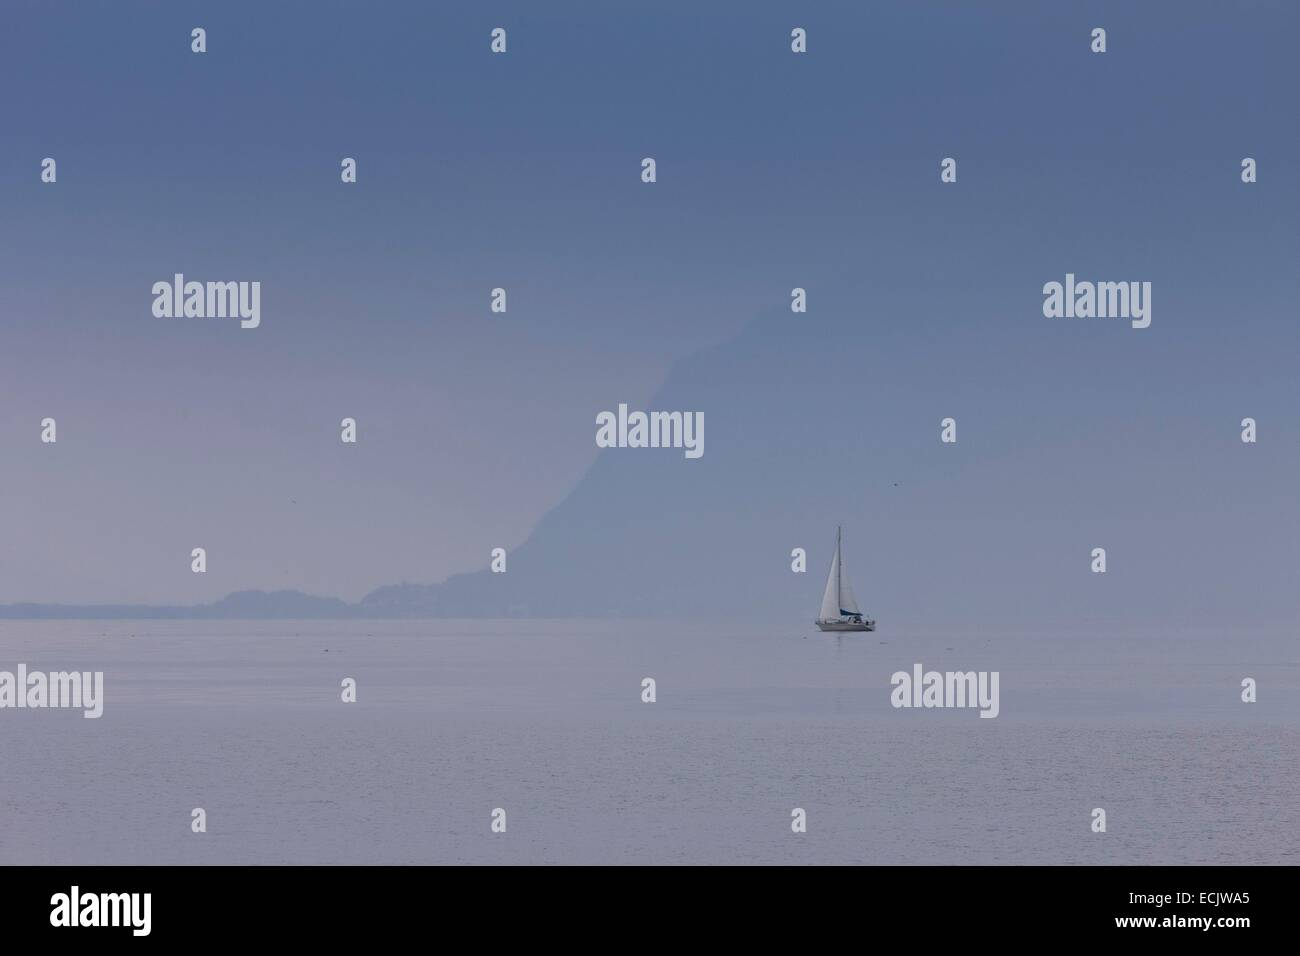 Switzerland, Canton of Vaud, sailing on lake Leman - Stock Image